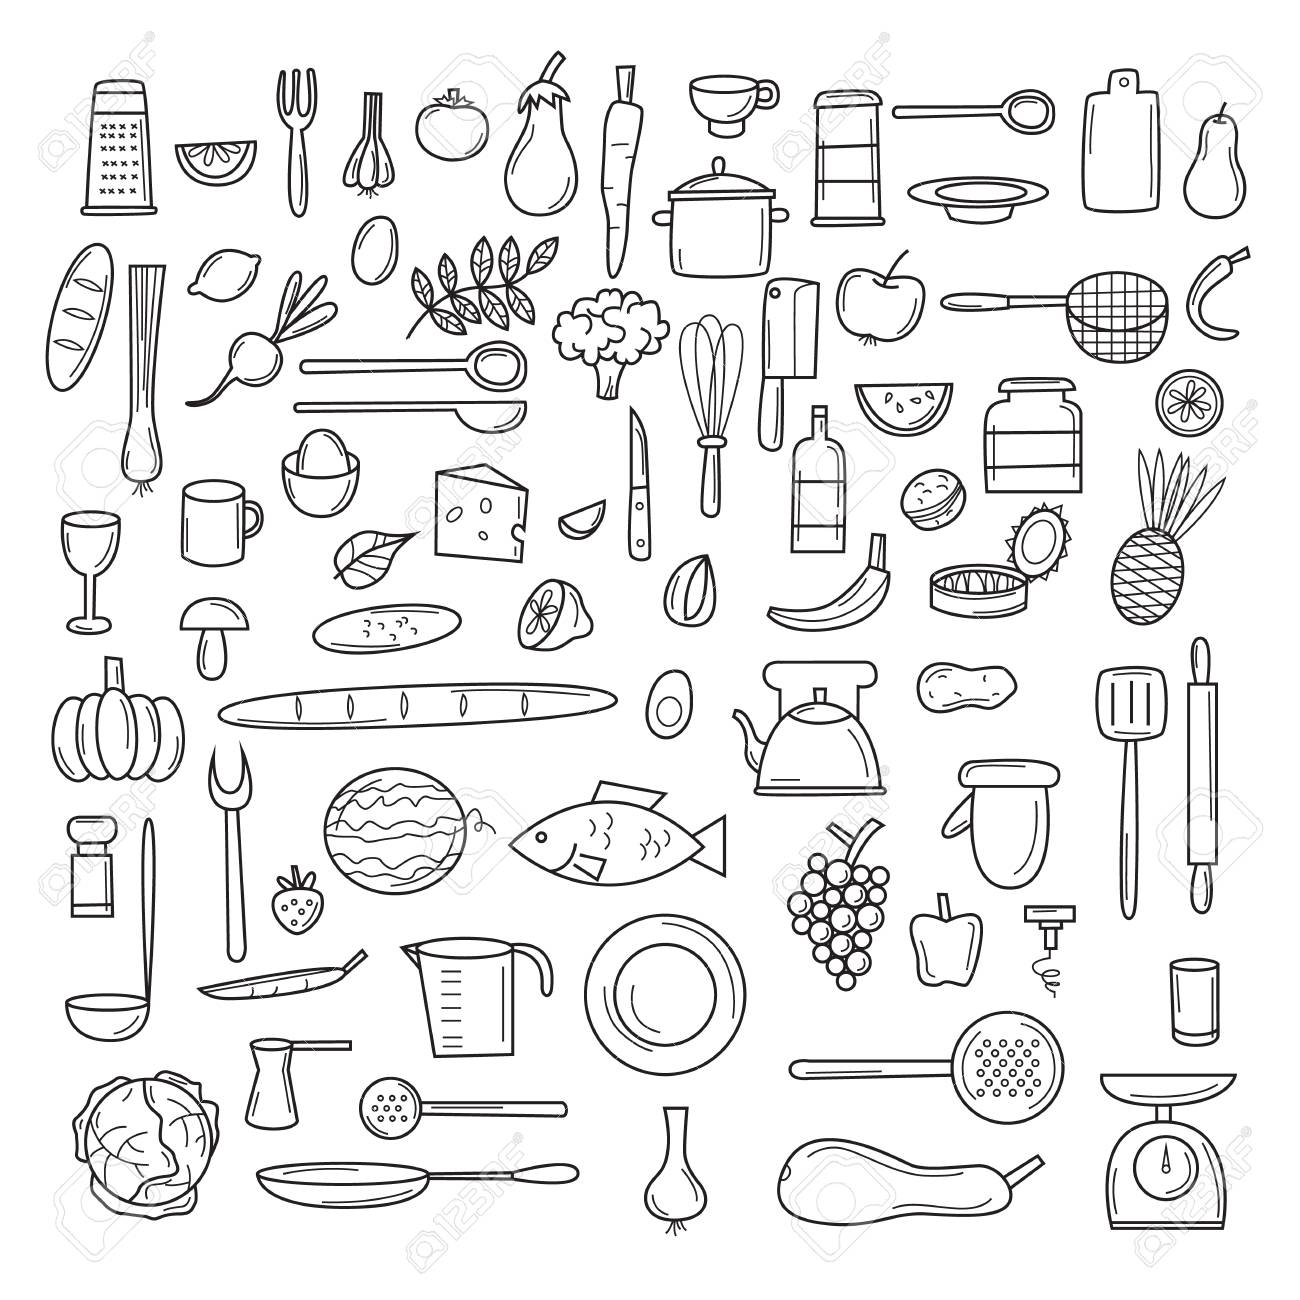 Kitchen tools, fruits, vegetables, thin line, cooking, utensils and cutlery. Icons set. - 56147006